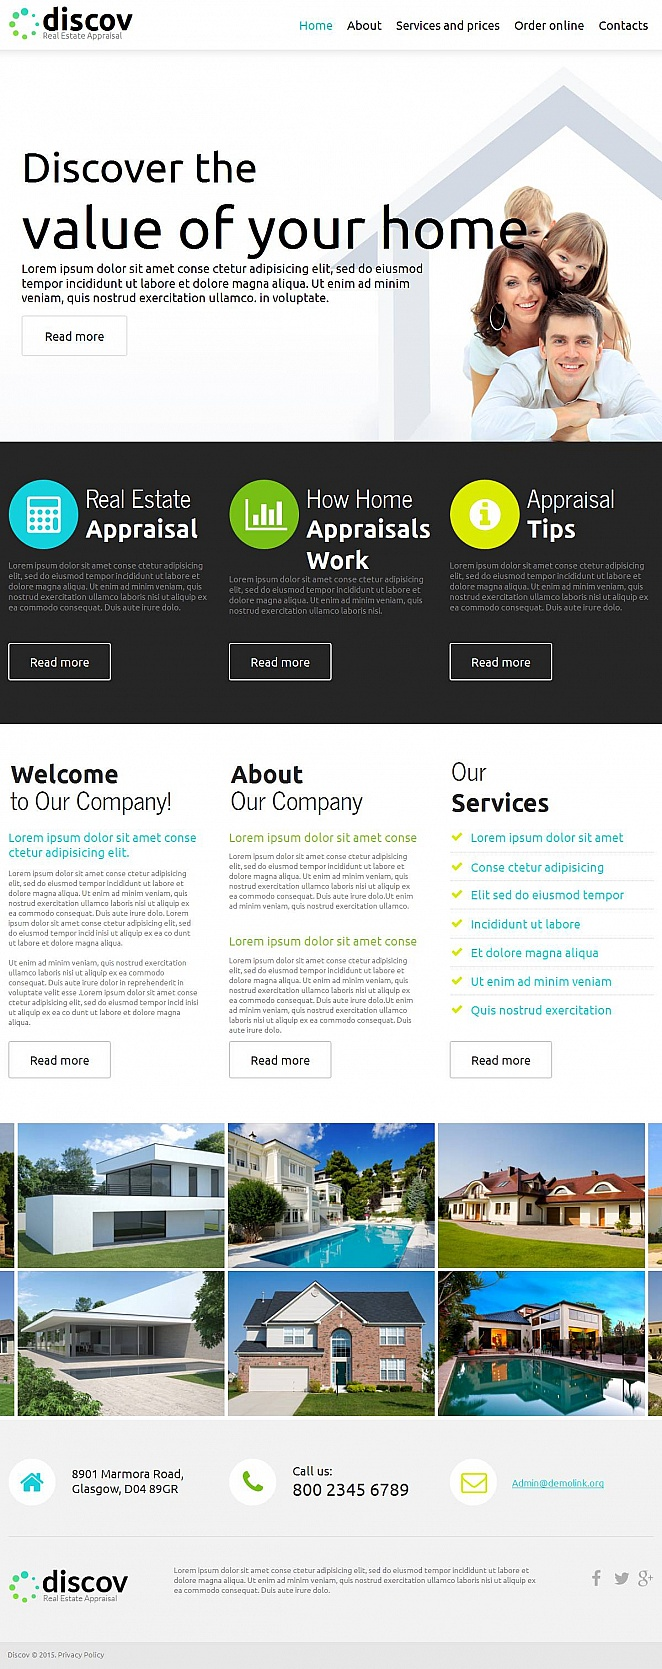 Home Appraisal Website Template - image